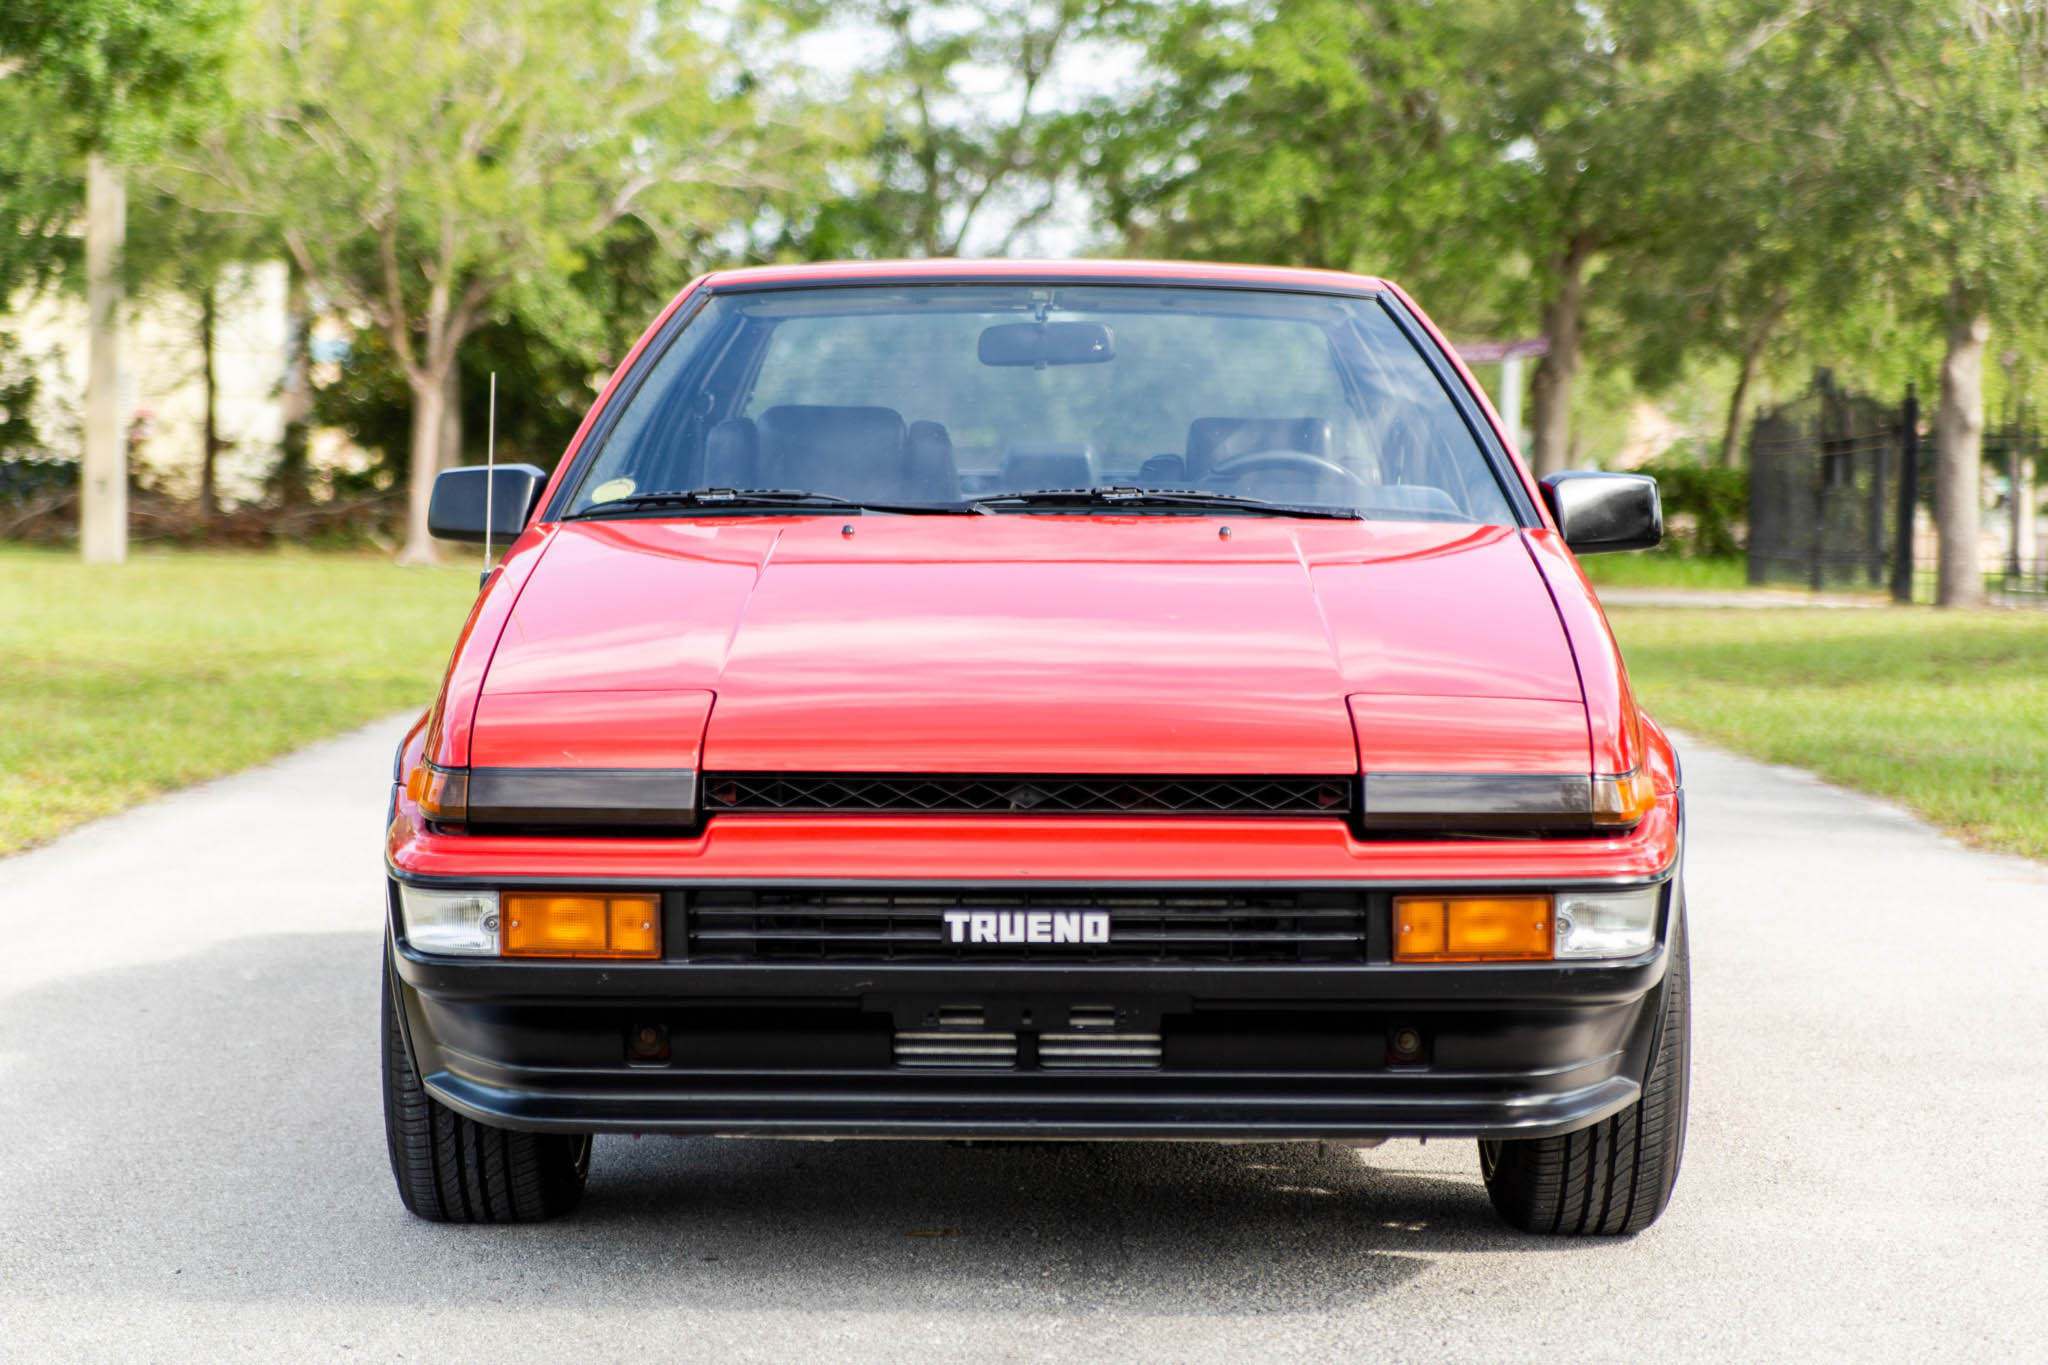 1987 Corolla GT-S with a Turbo 2 4 L F-Series Inline-Four